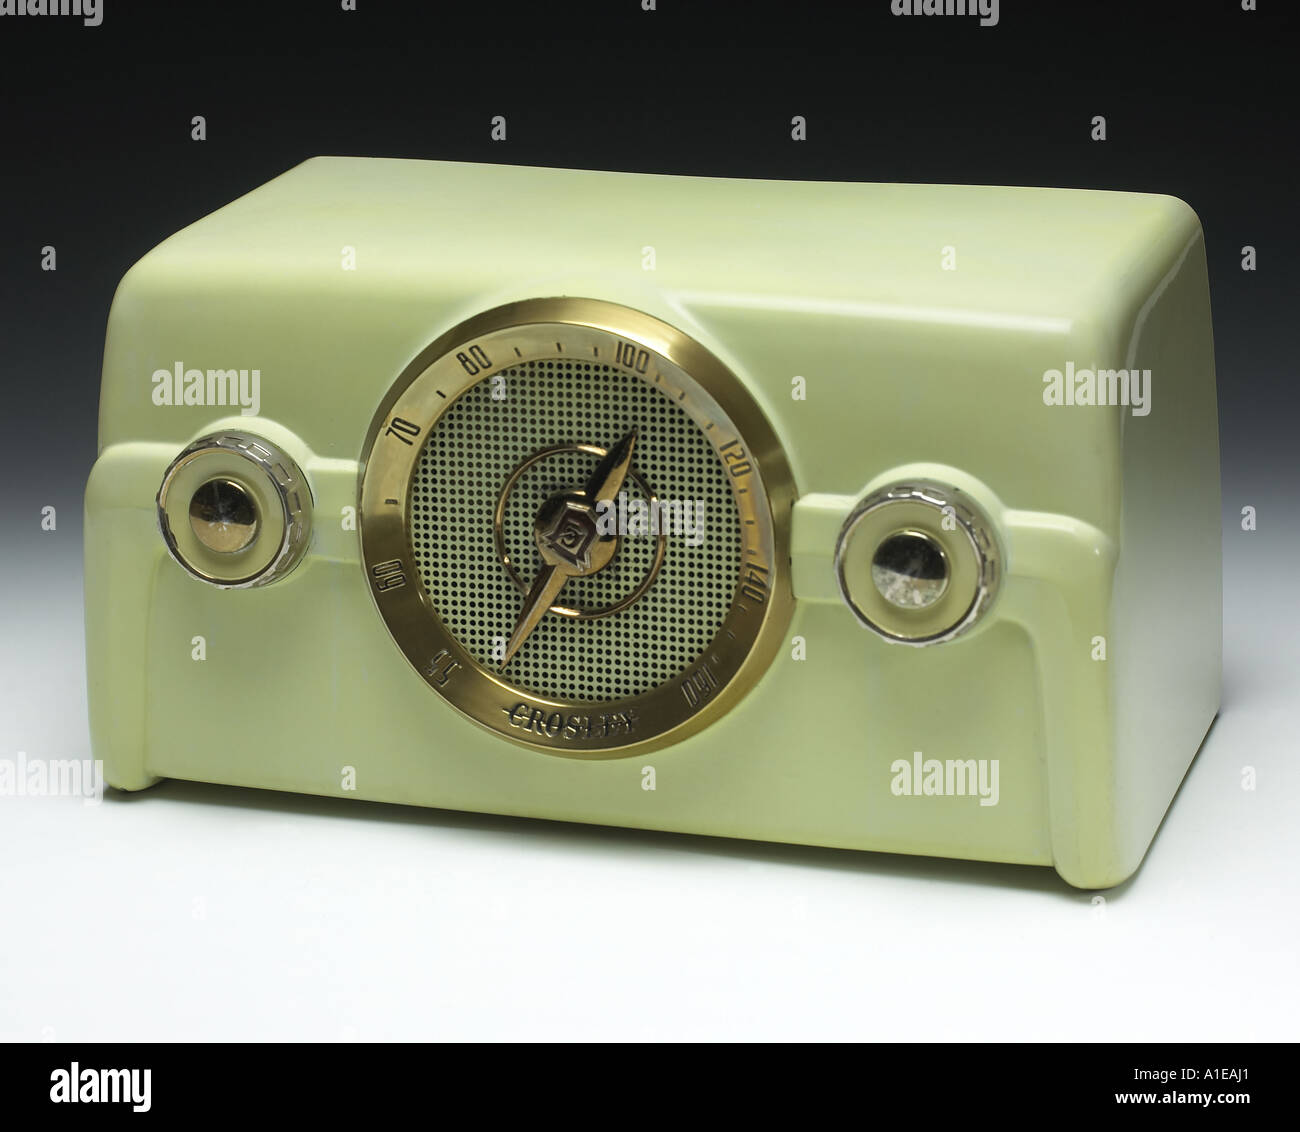 Crosley Radio Green Crosley Radio Stock Photo 5847456 Alamy